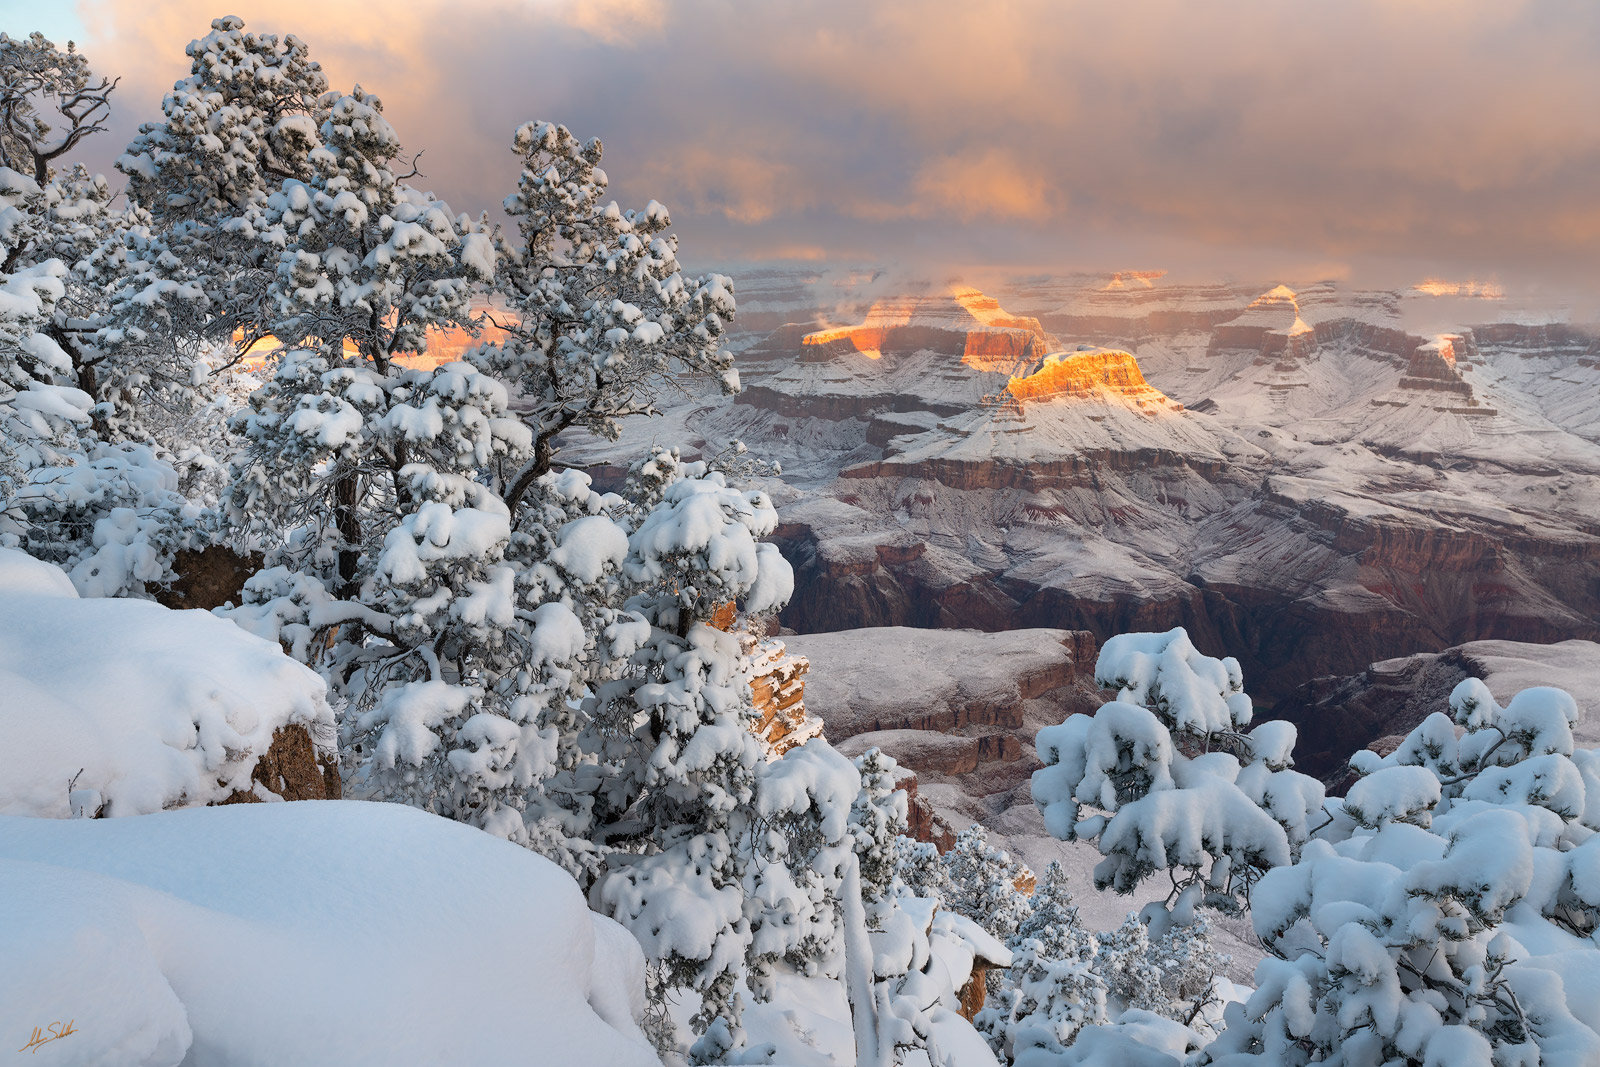 AZ, Arizona, Grand Canyon, Grand Canyon National Park, National Park, Snow, Snow at the Grand Canyon, South Rim, South Rim of the Grand Canyon, Southwest, Winter, Winter at the Grand Canyon, photo